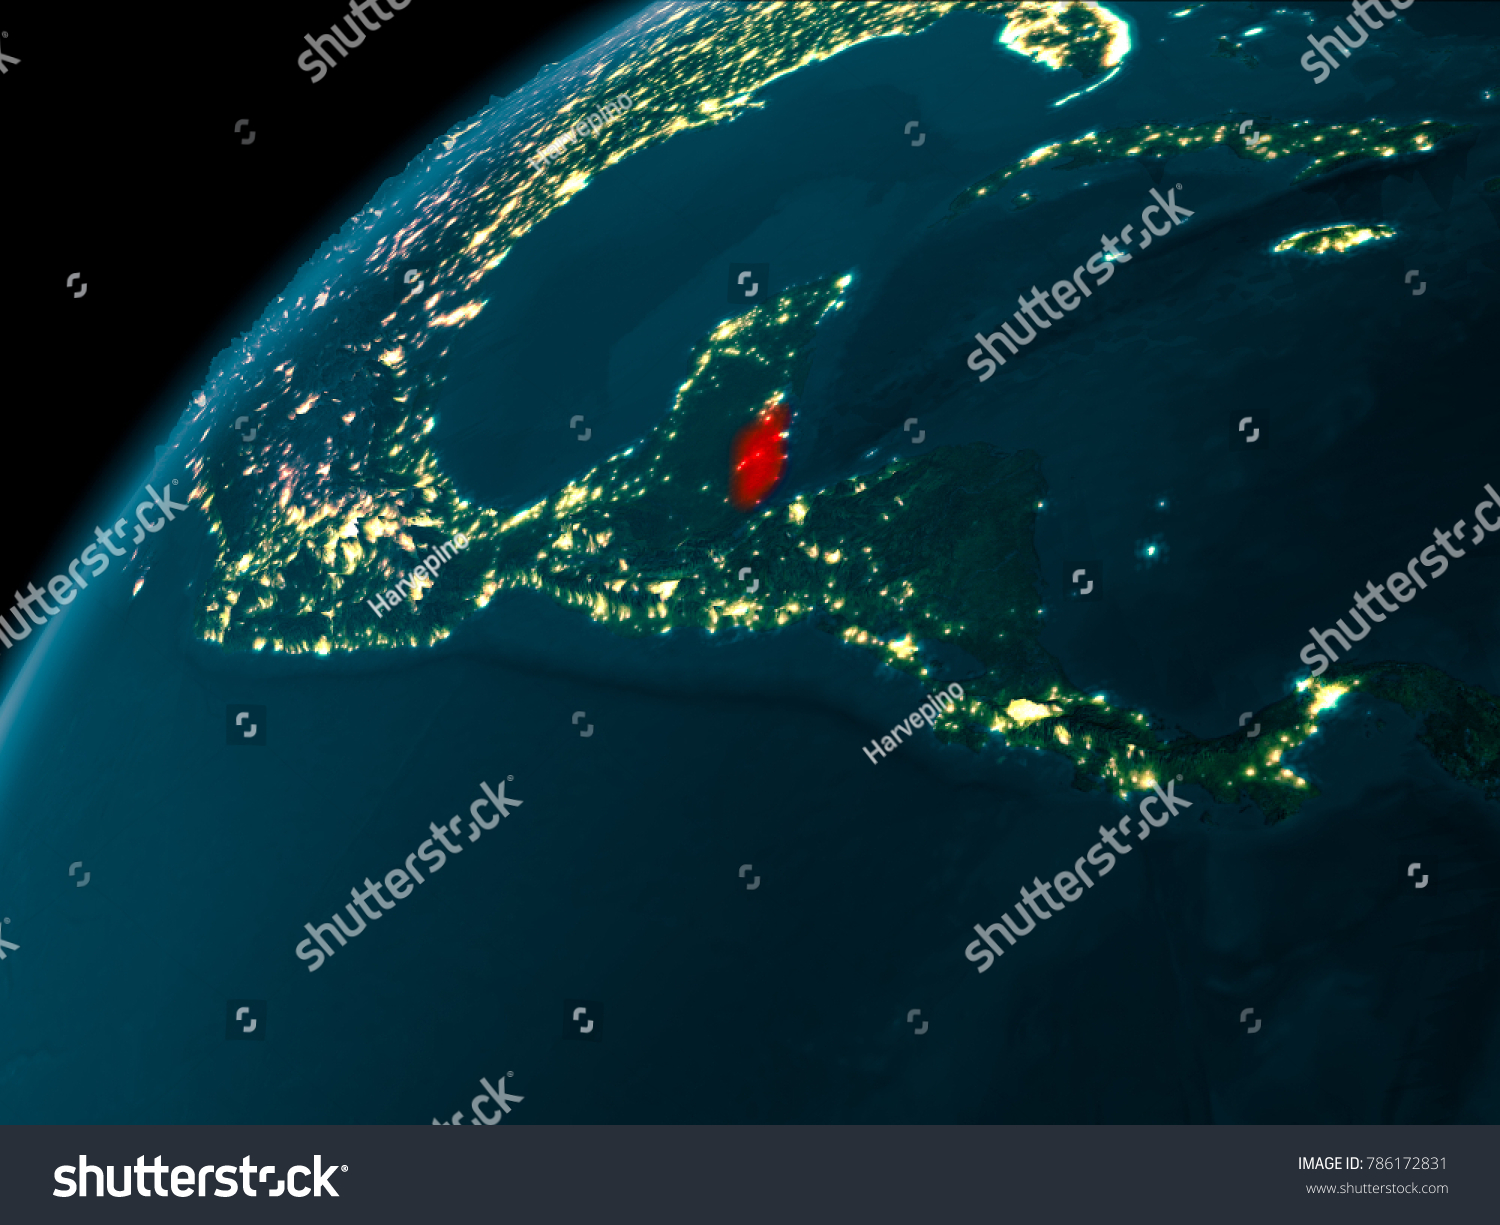 Night map belize seen space on stock illustration 786172831 night map of belize as seen from space on planet earth 3d illustration elements gumiabroncs Image collections